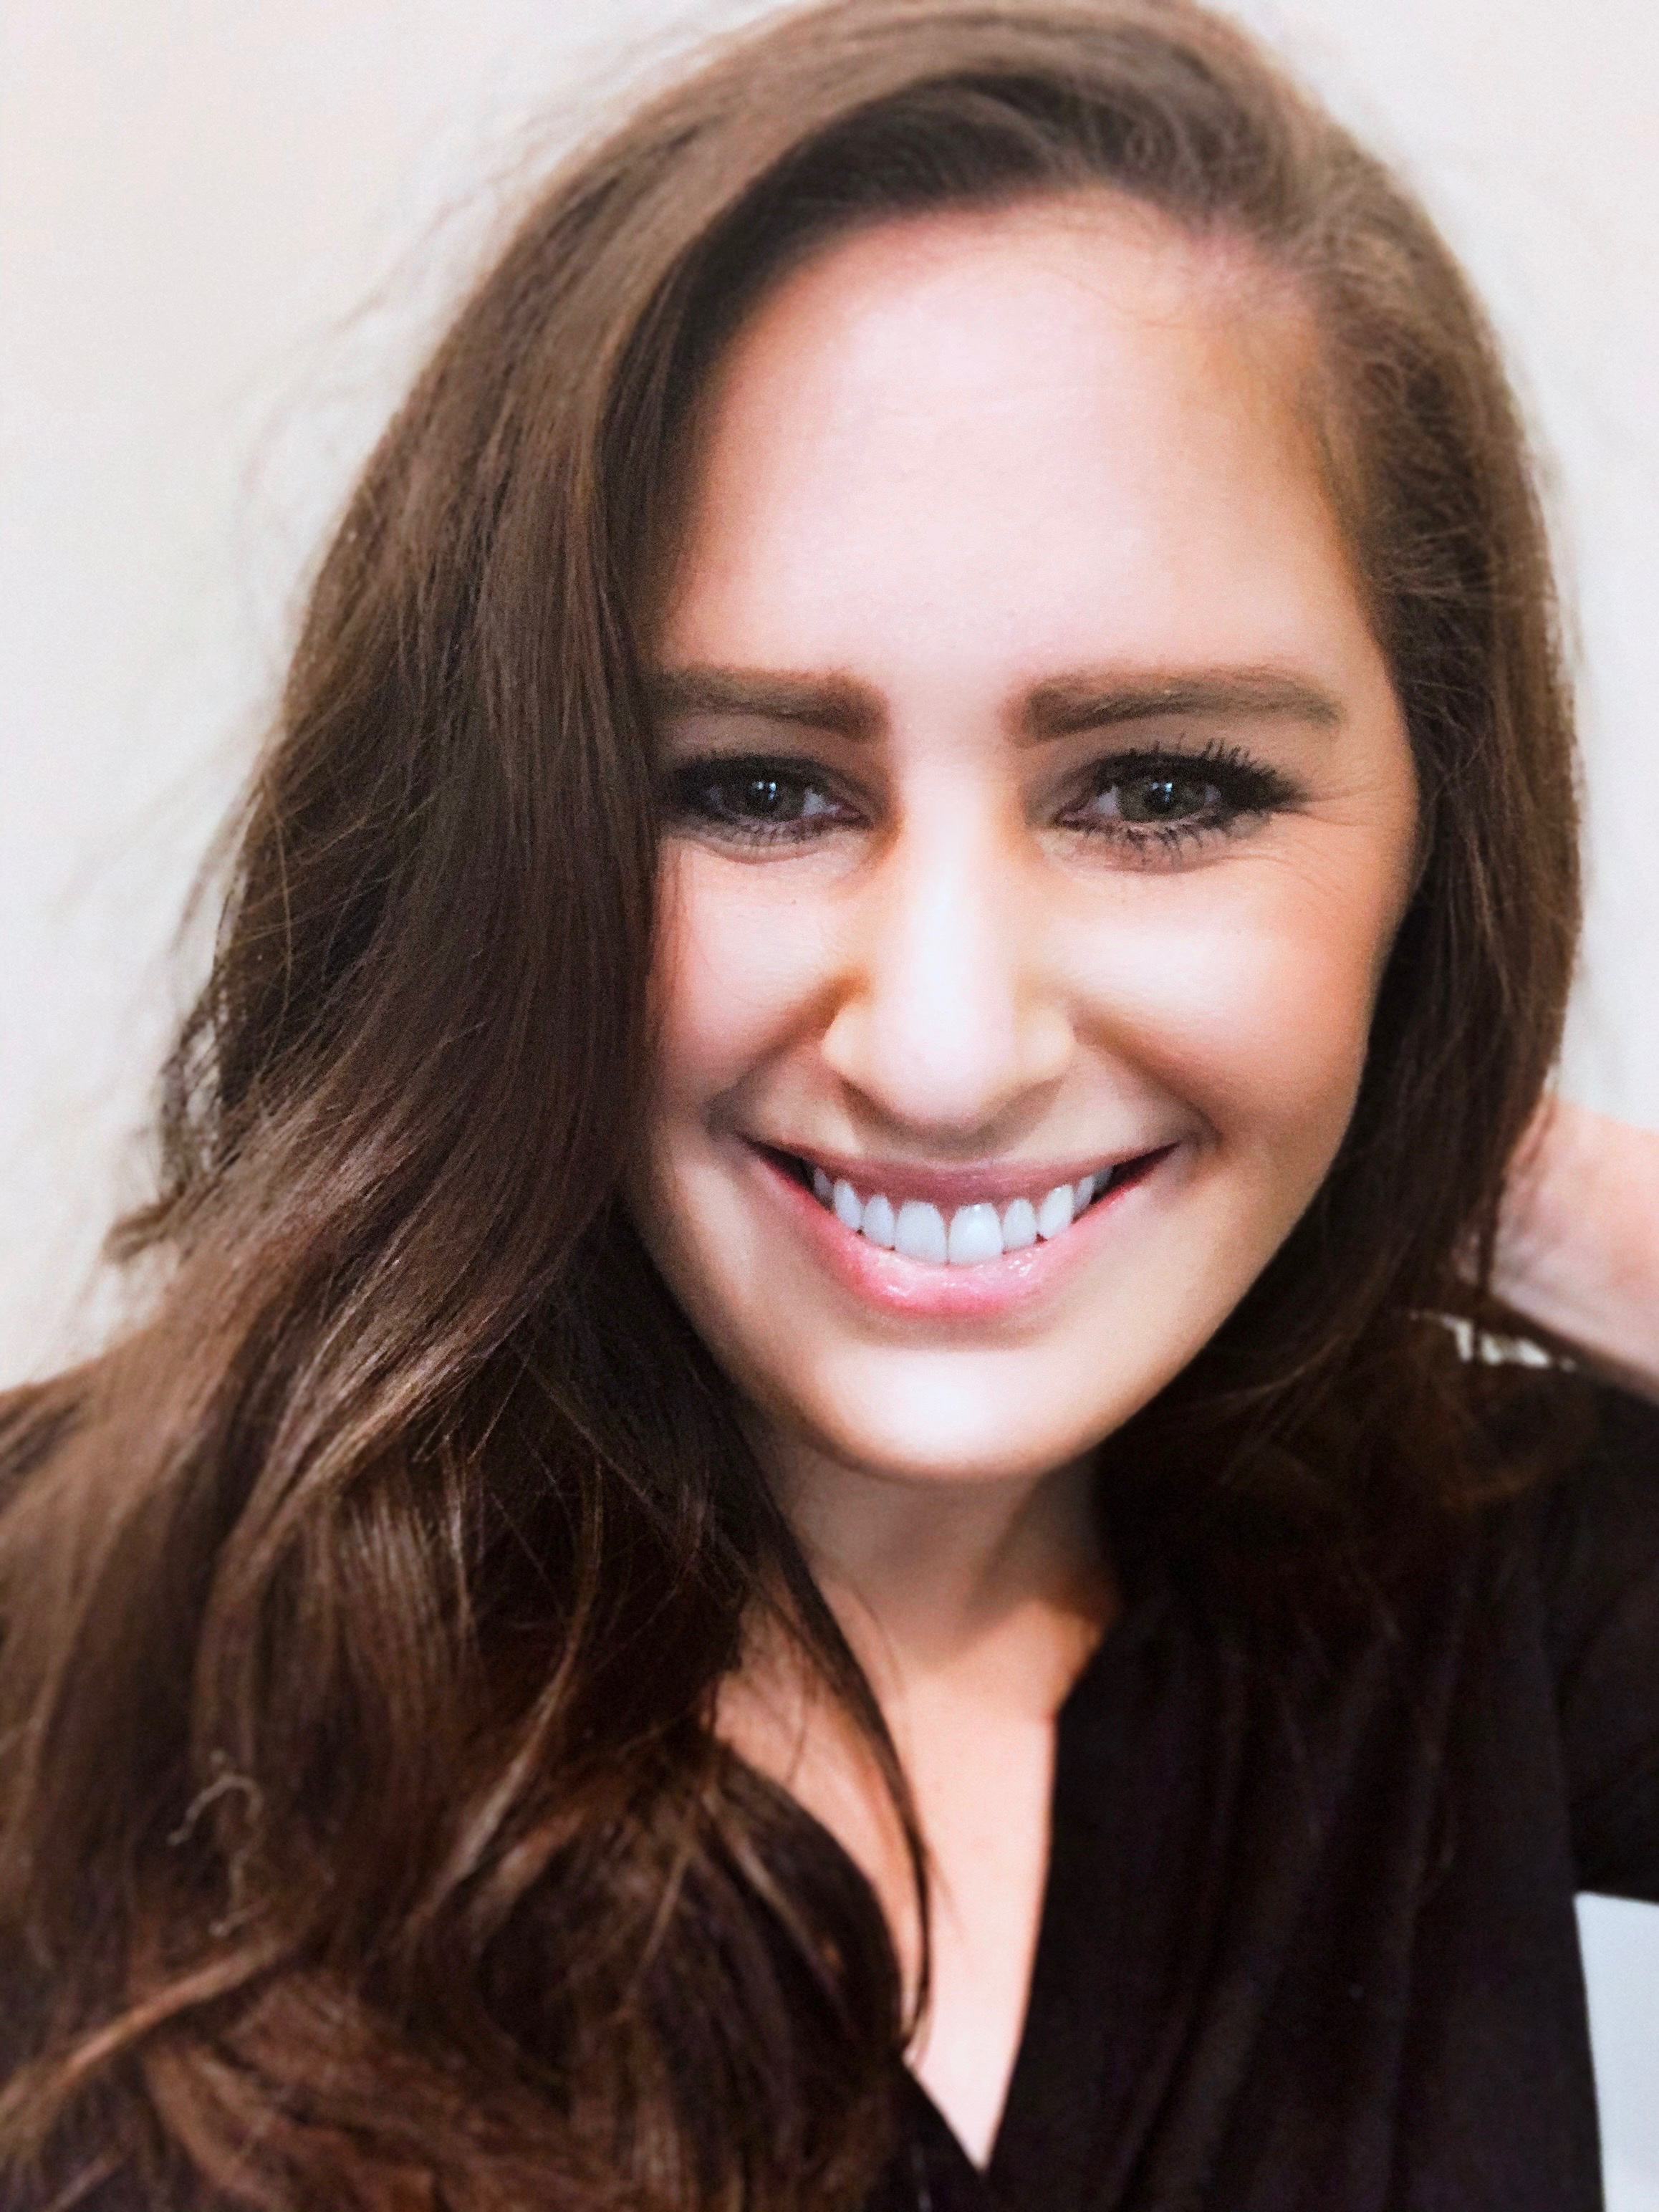 Smiling photo of Gillian Fishman, CEO of Jade. Gillian has brown wavy hair and hazel eyes, and is wearing a black v-neck shirt.